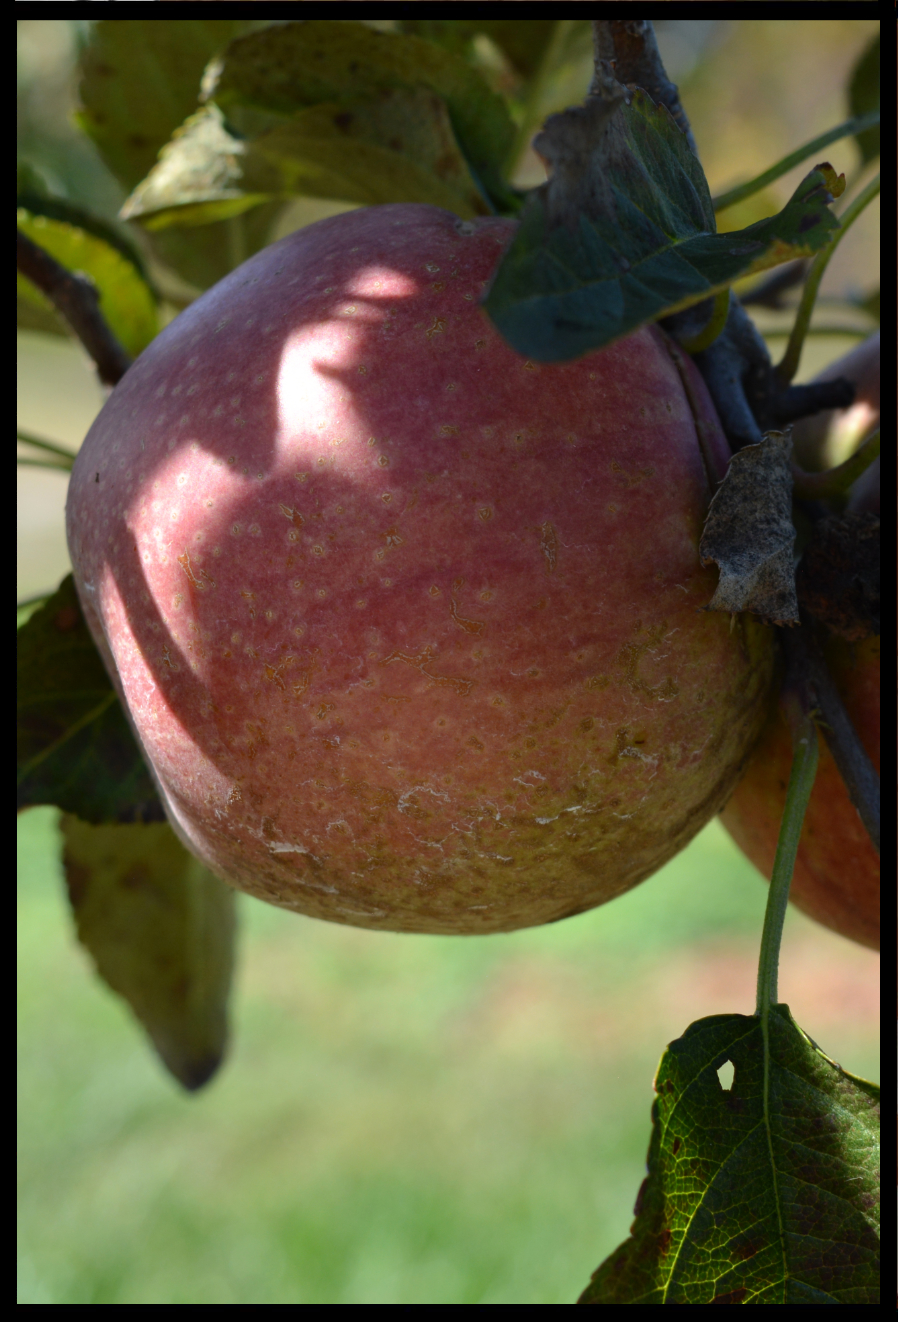 a pink apple with yellowish spots